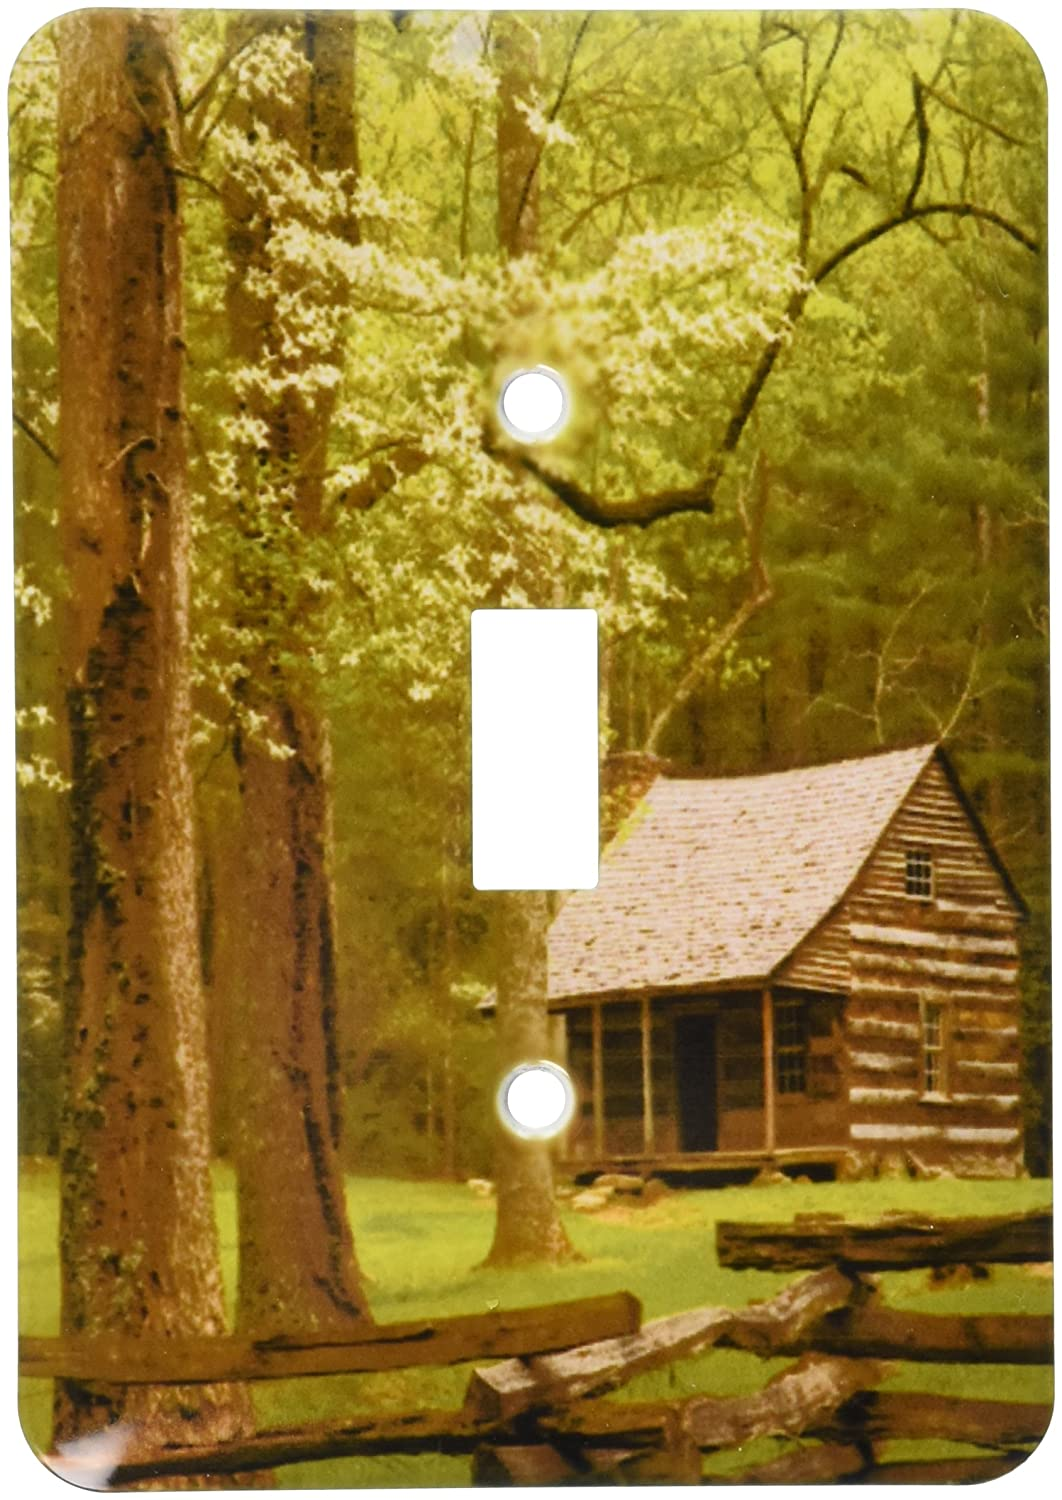 Great Smoky Mountain Np Cades Cove Cabin Us11 Jwl0271 Joanne Wells Single Toggle Switch 3dRose lsp/_89394/_1 Tennessee